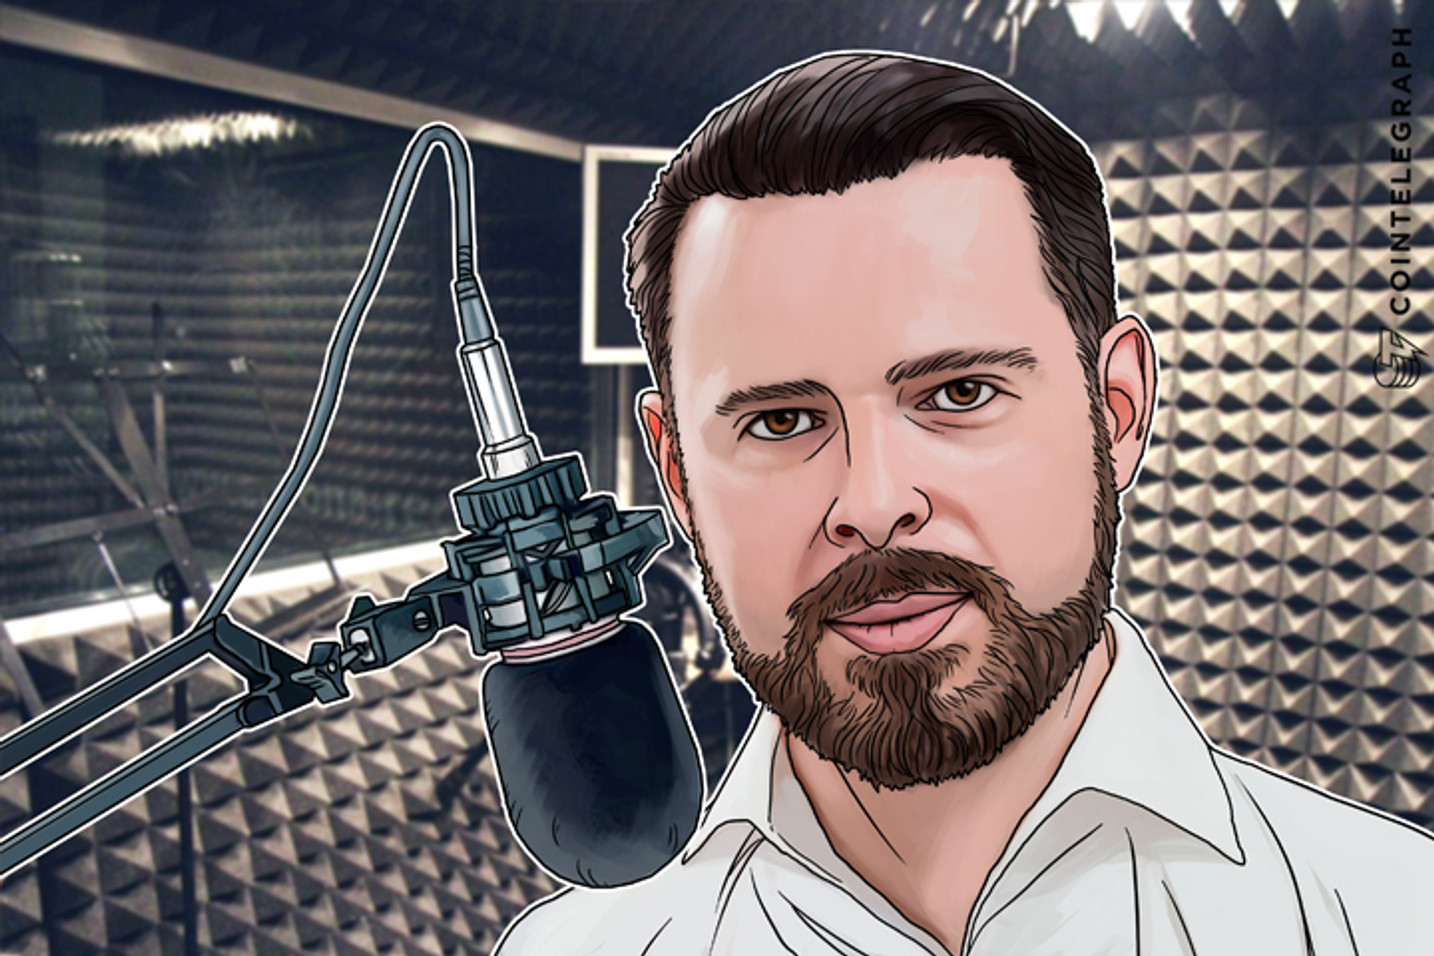 Podcast: Chris Horlacher - World's First Supernode Infrastructure